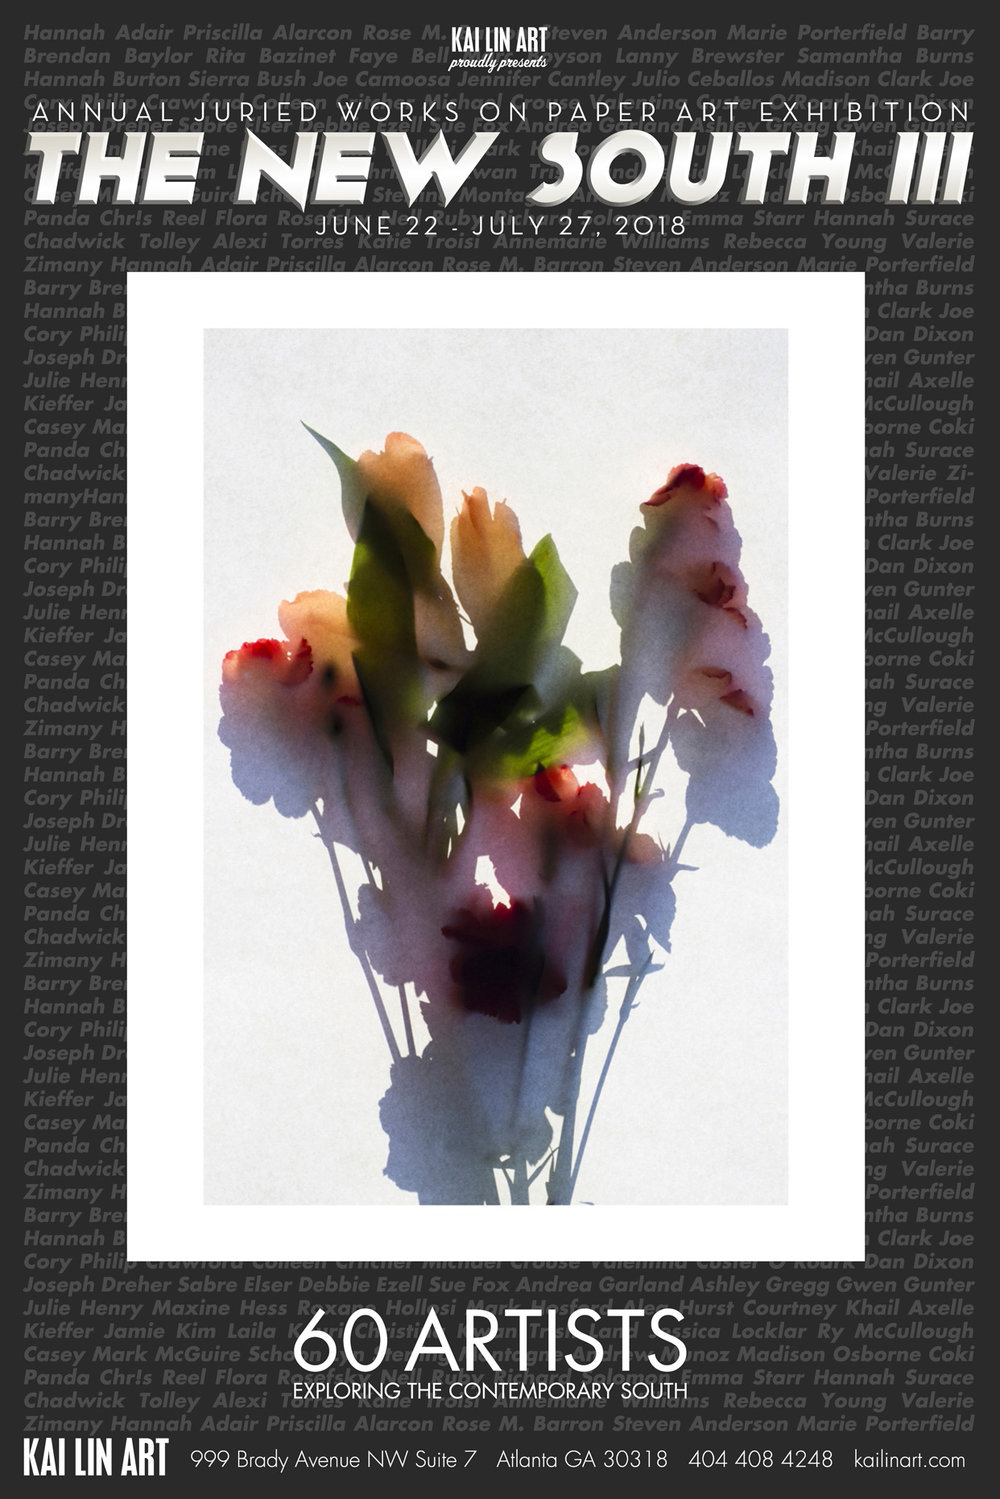 SOLOMON_RICHARD_BOUQUET_1_archival_pigment_print_2.jpg